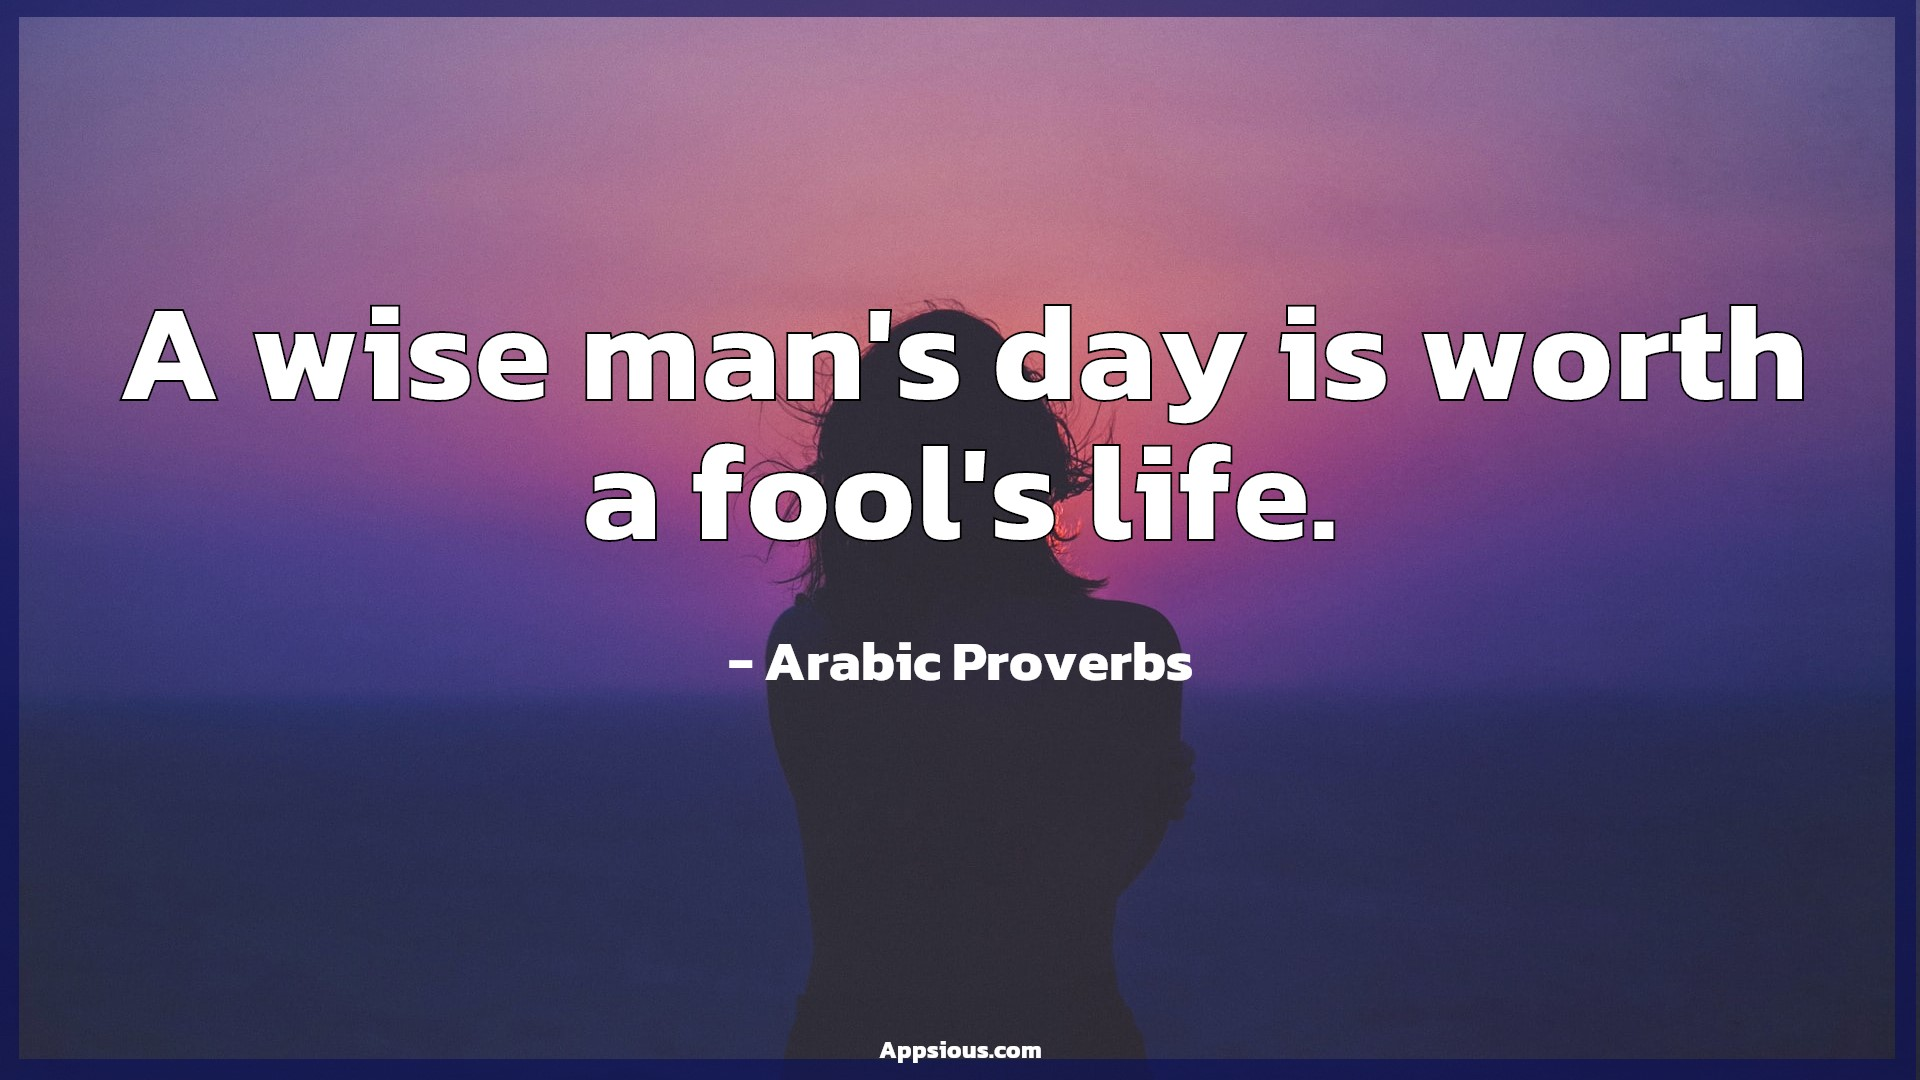 A wise man's day is worth a fool's life.